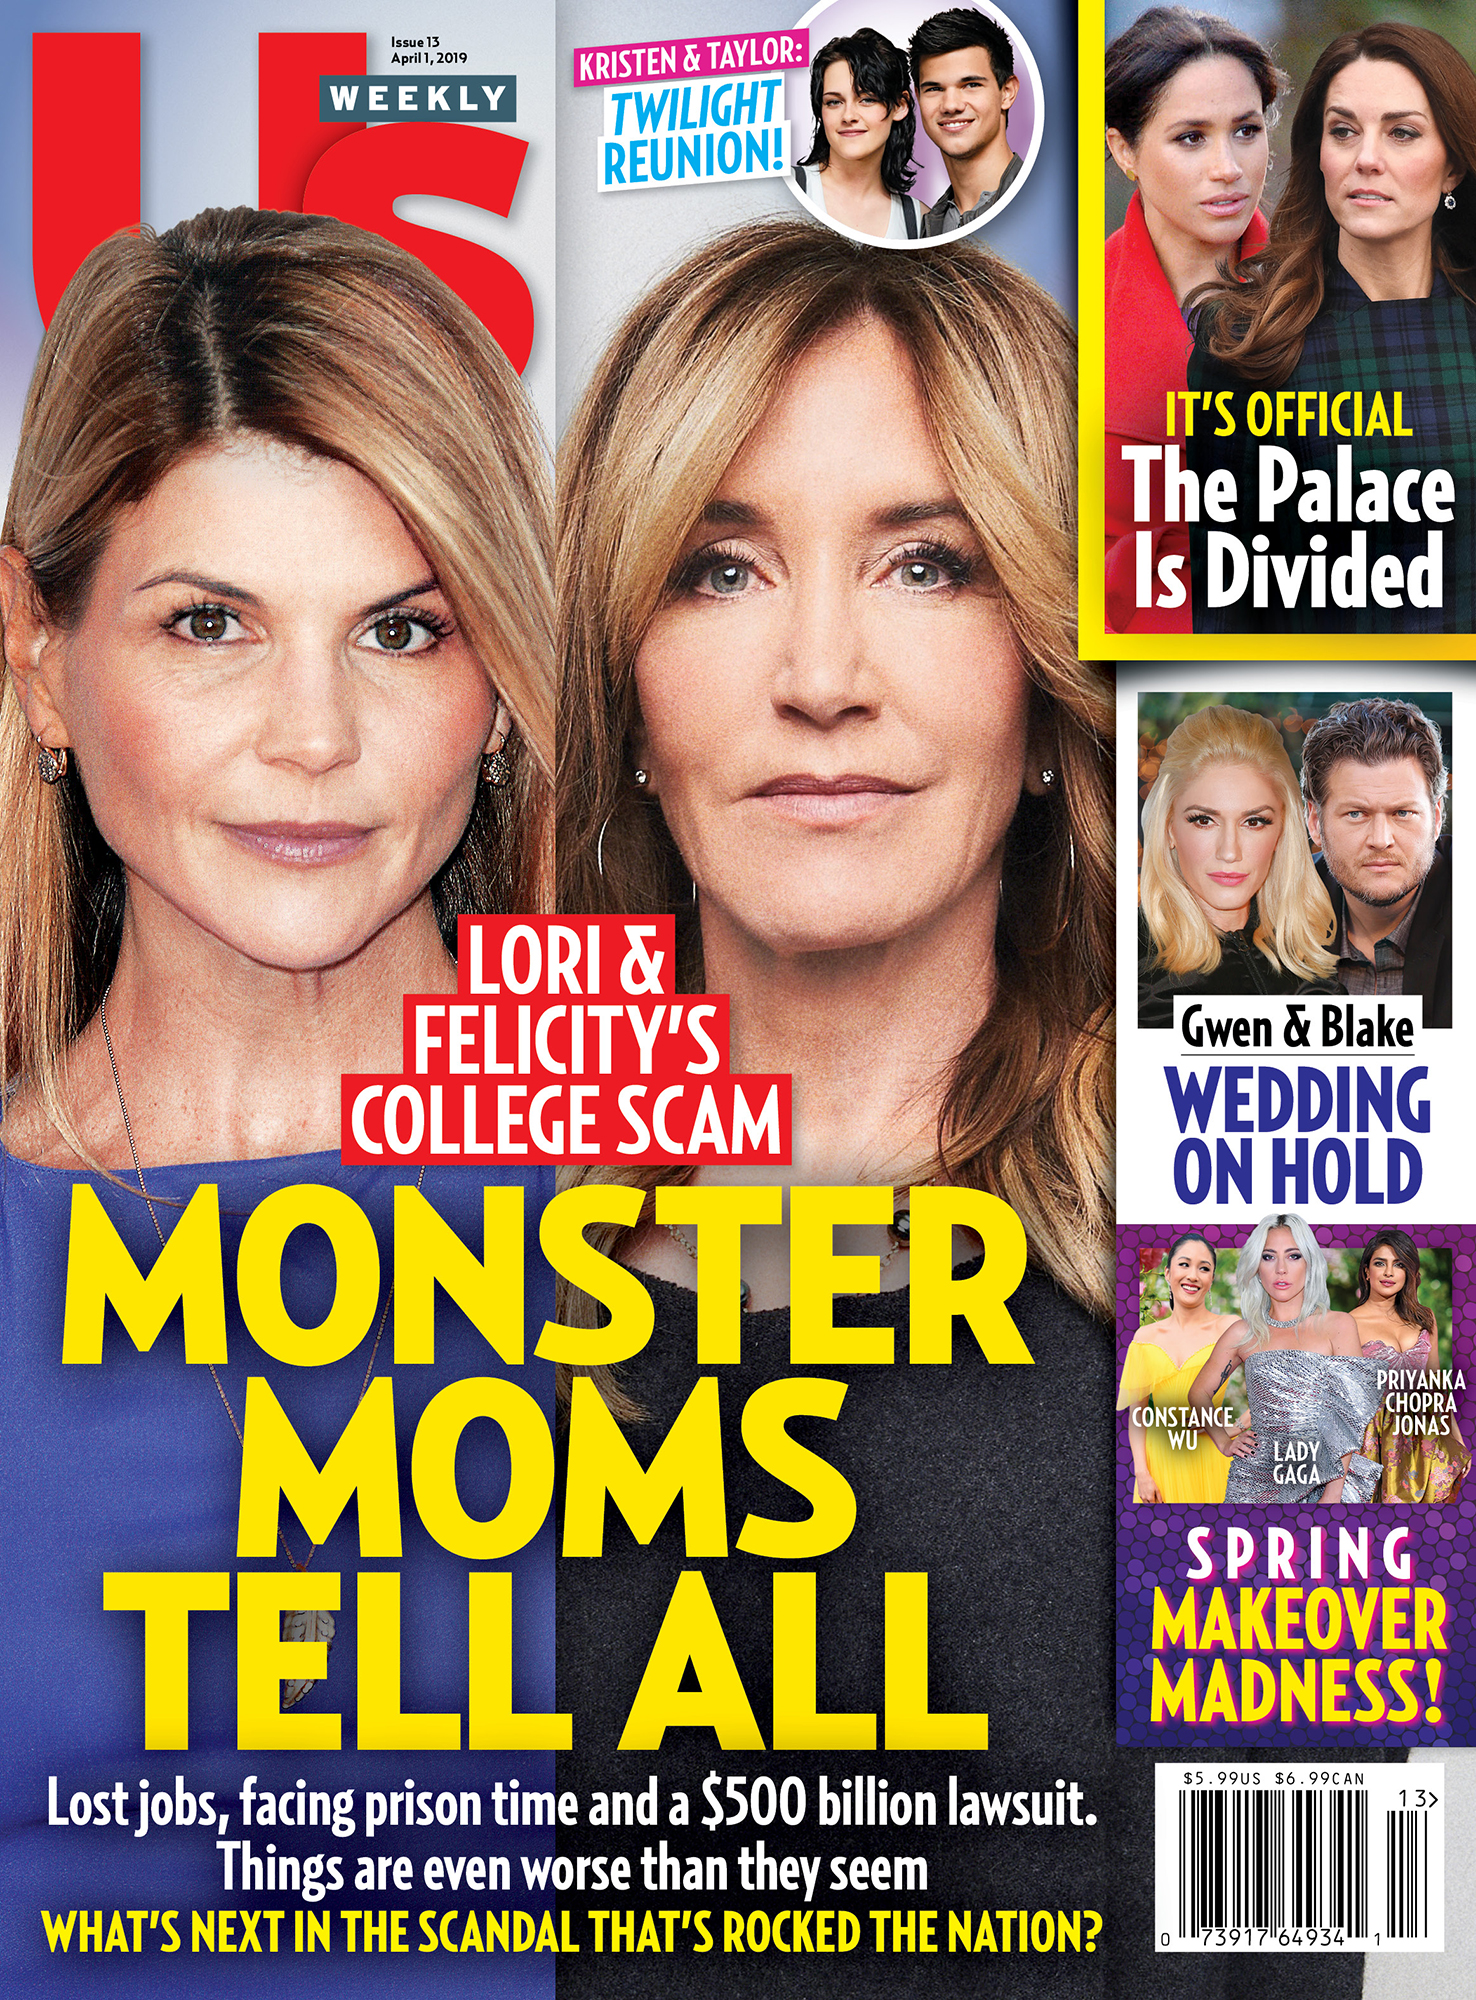 Felicity Huffman's 'Shame and Humiliation Are Unfathomable' - UW1319 Us Weekly Cover Felicity Huffman and Lori Loughlin